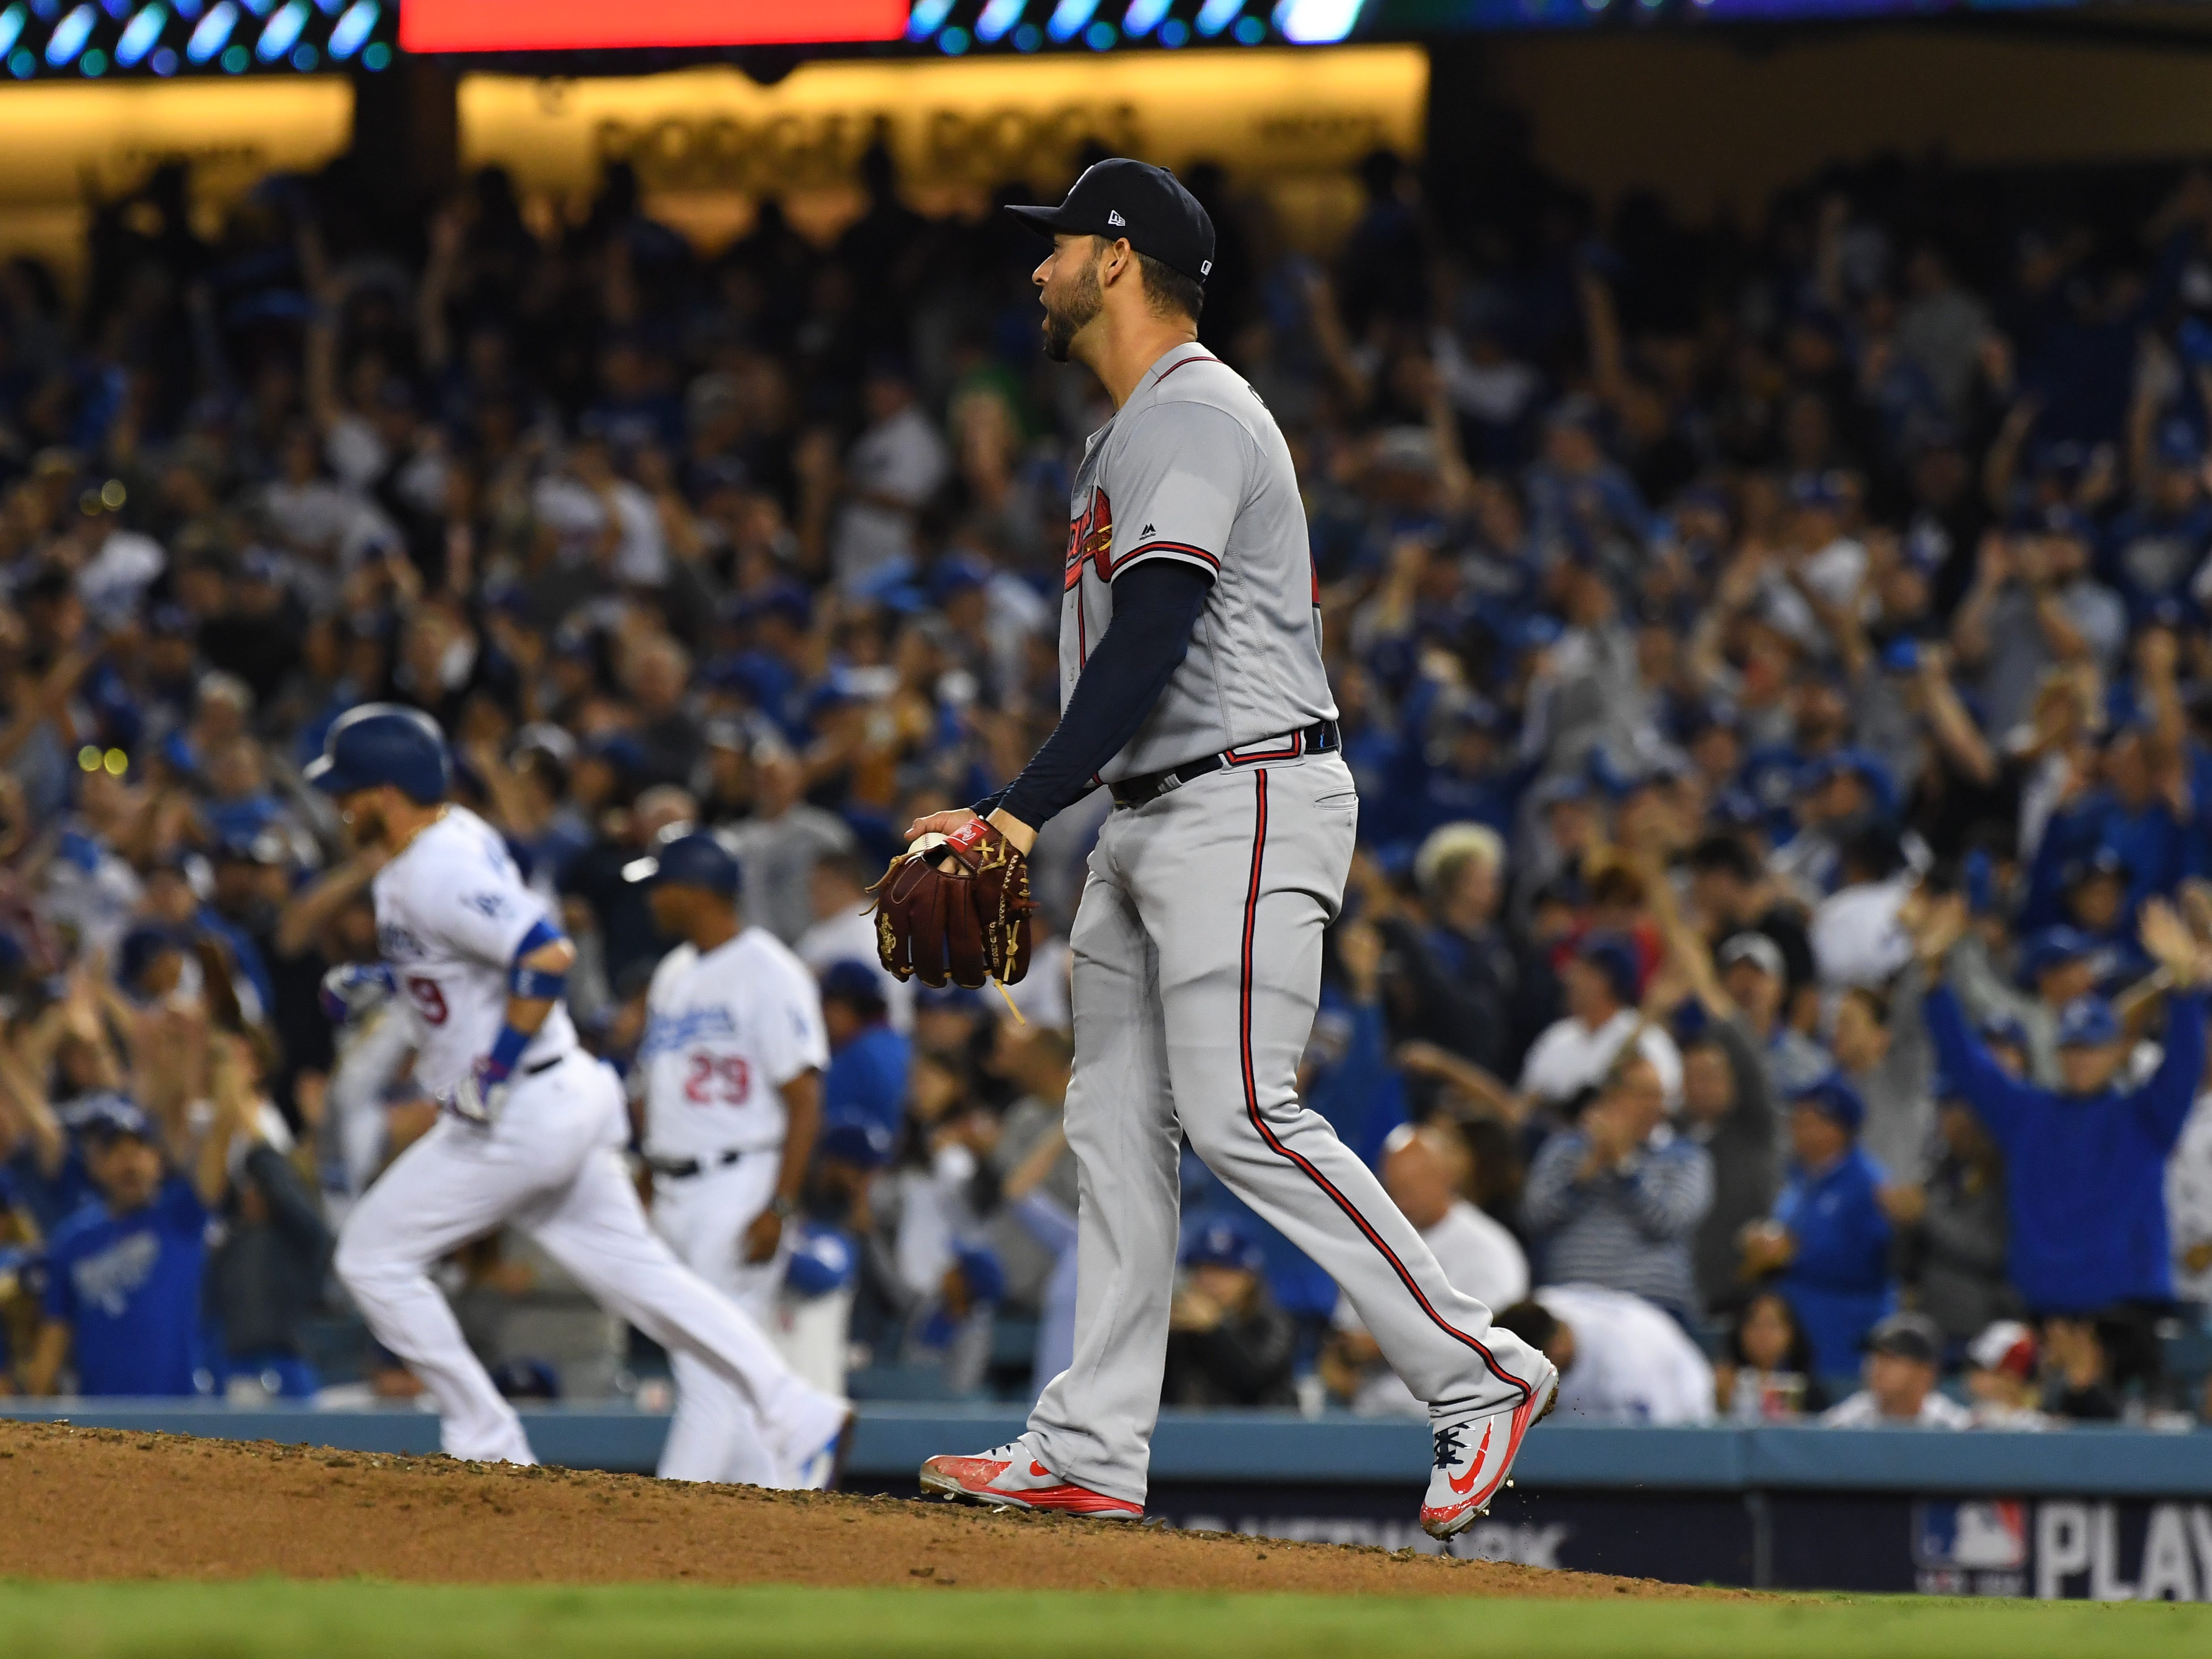 NLDS Game 2: Braves starting pitcher Anibal Sanchez looks on as Dodgers catcher Yasmani Grandal rounds the bases after hitting a home run in the fifth inning.